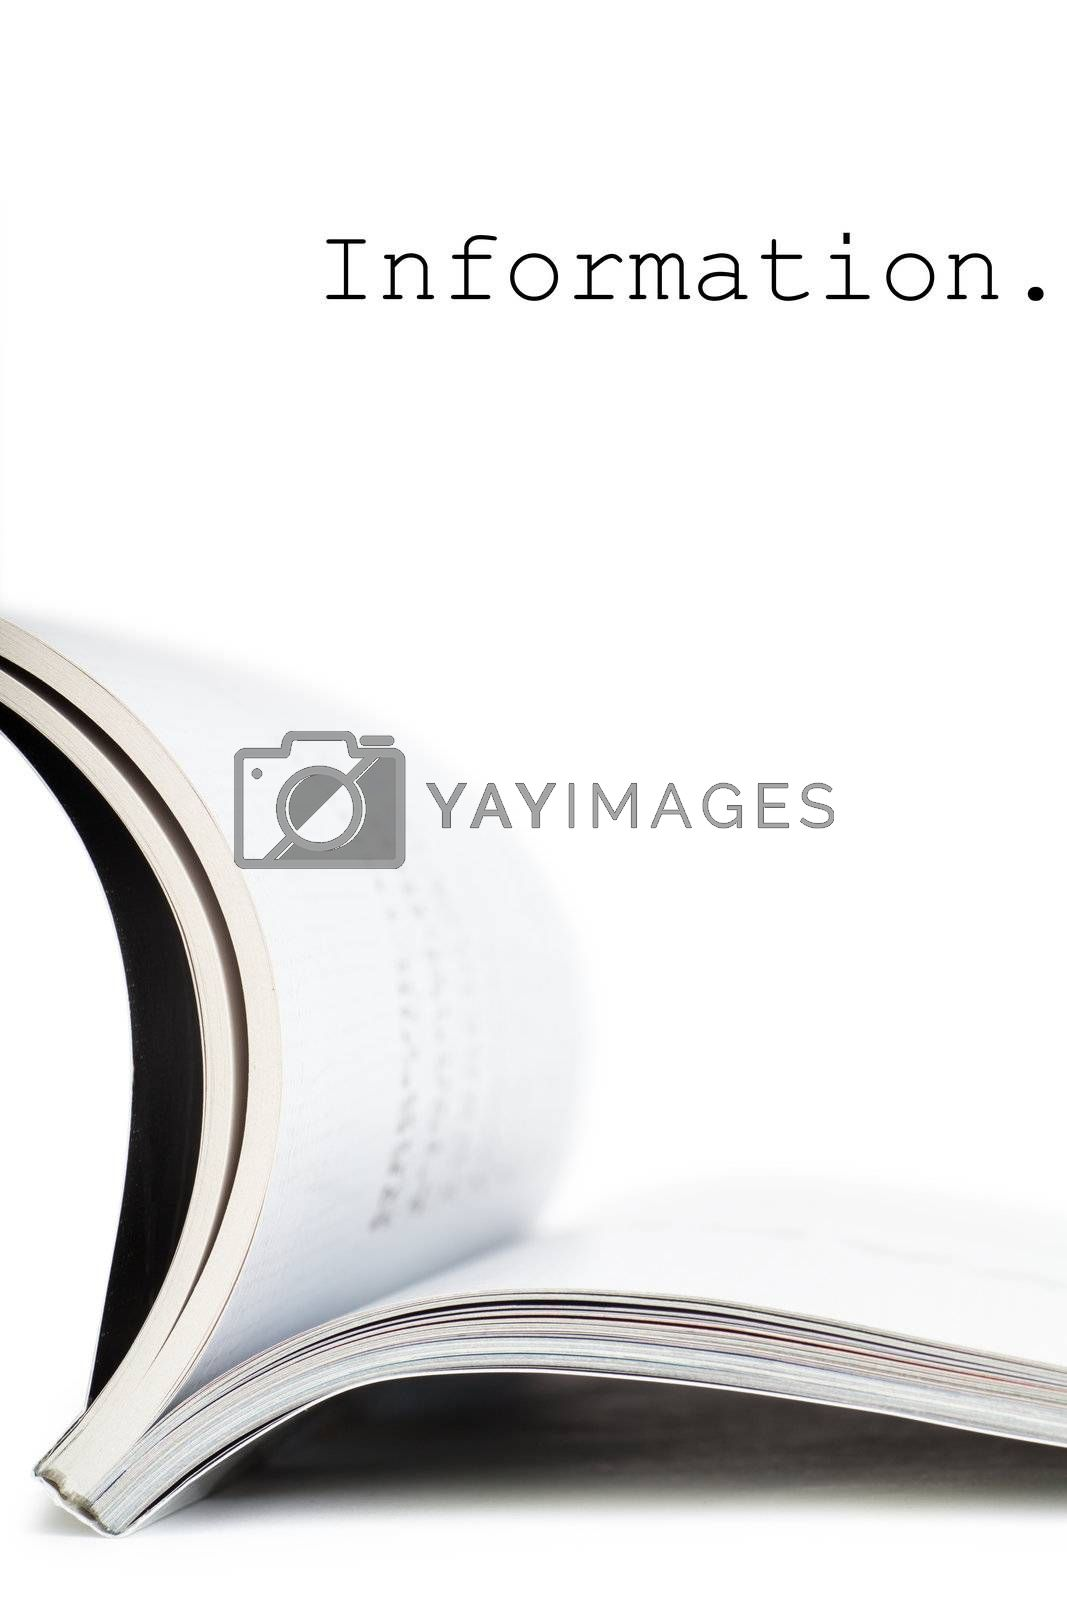 Selective focus image of magazine in profile